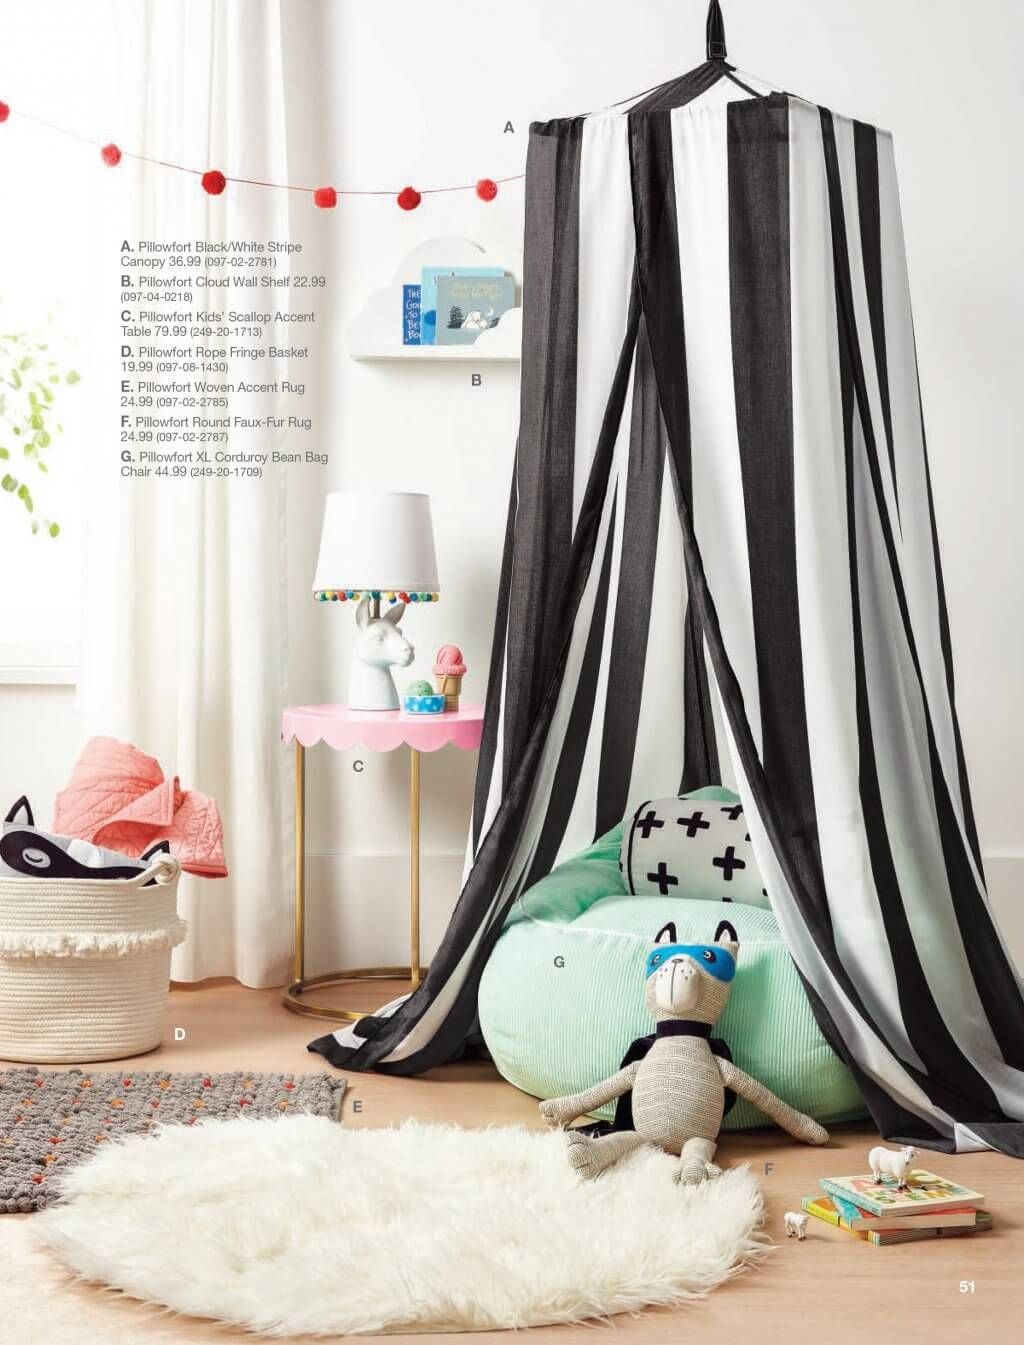 Create A Centerpiece In Child Rsquo S Room With The Rugby Stripe Canopy Black White From Pillowfort This Bed Can Be Hung To Sleeping